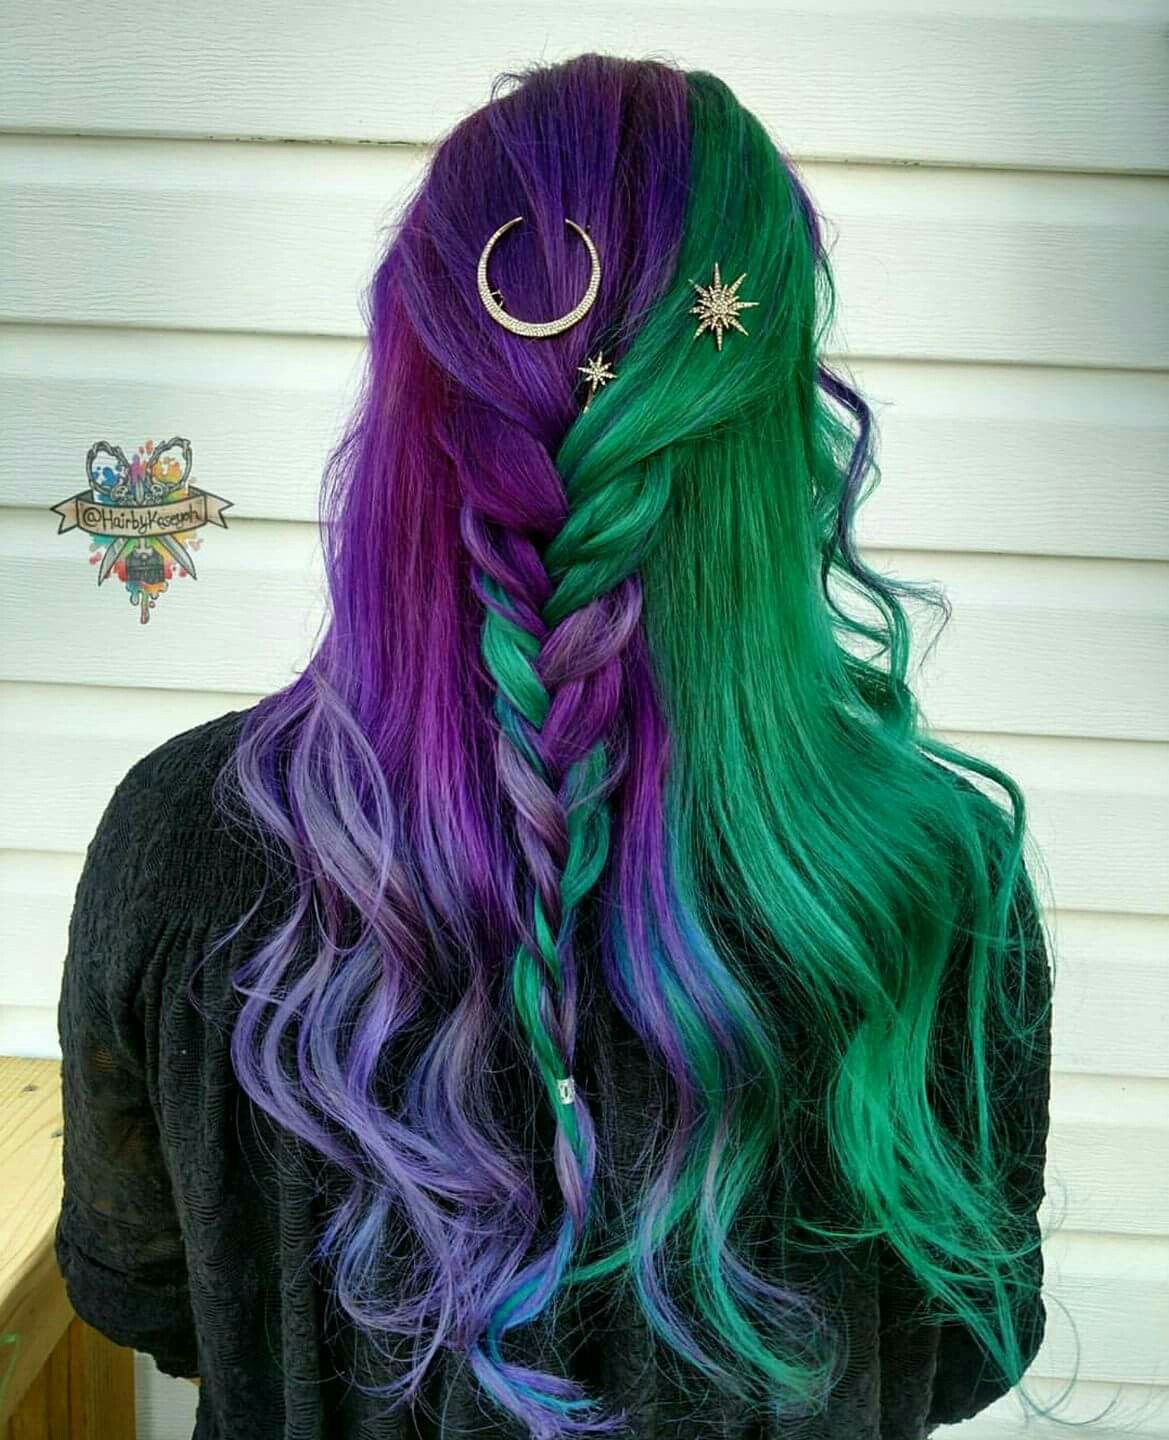 48 Different Colors Hairstyles Trending On Pinterest Half And Half Hair Hair Styles Dyed Hair